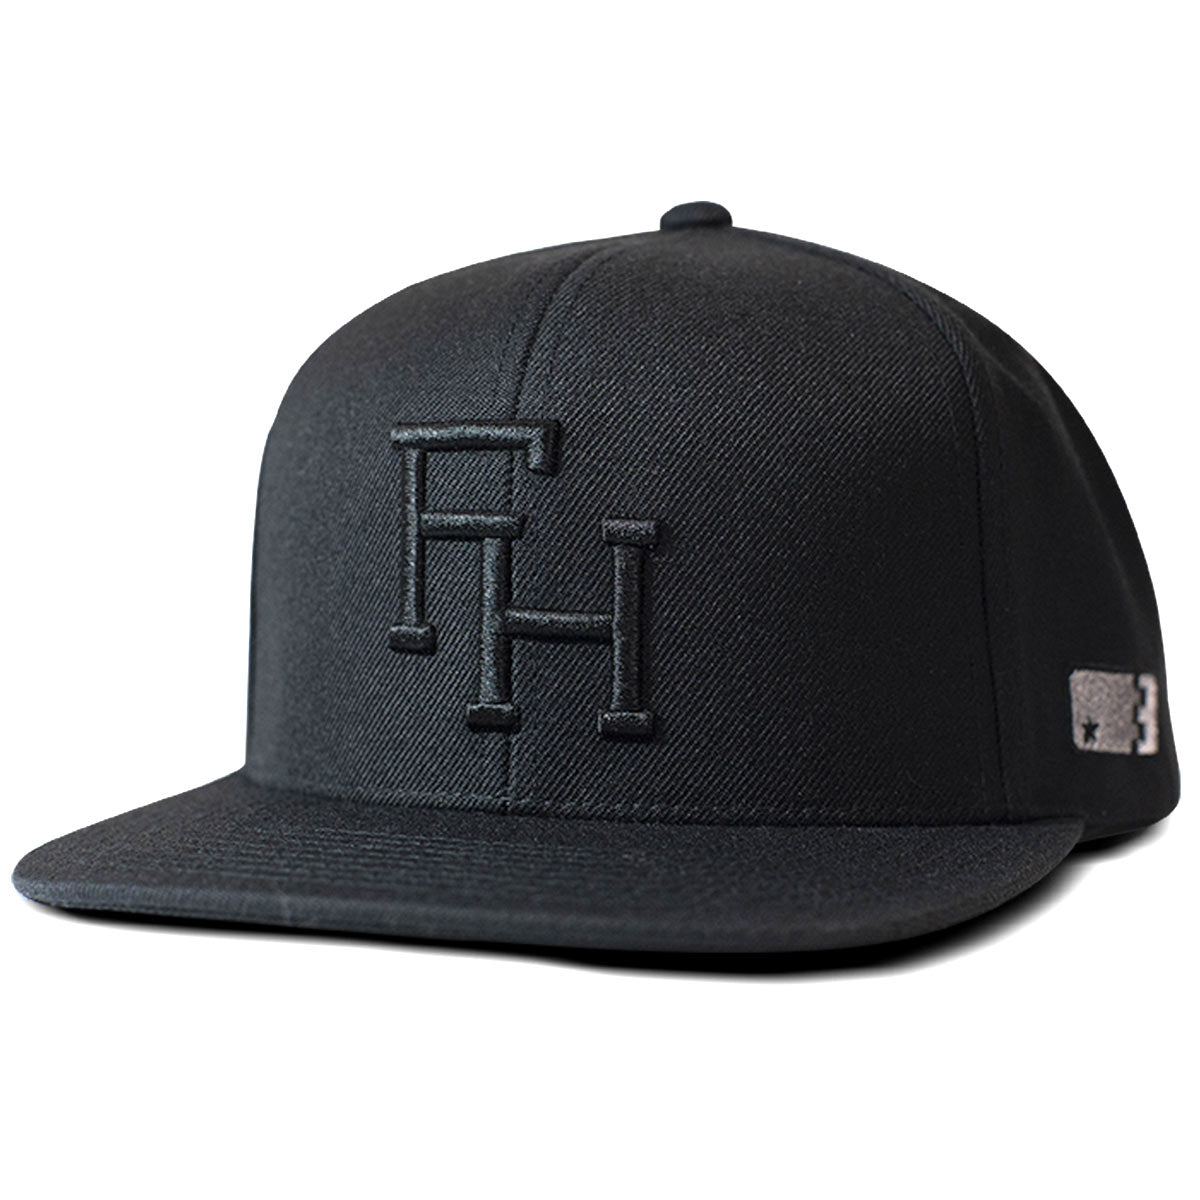 All Star Hat - Black